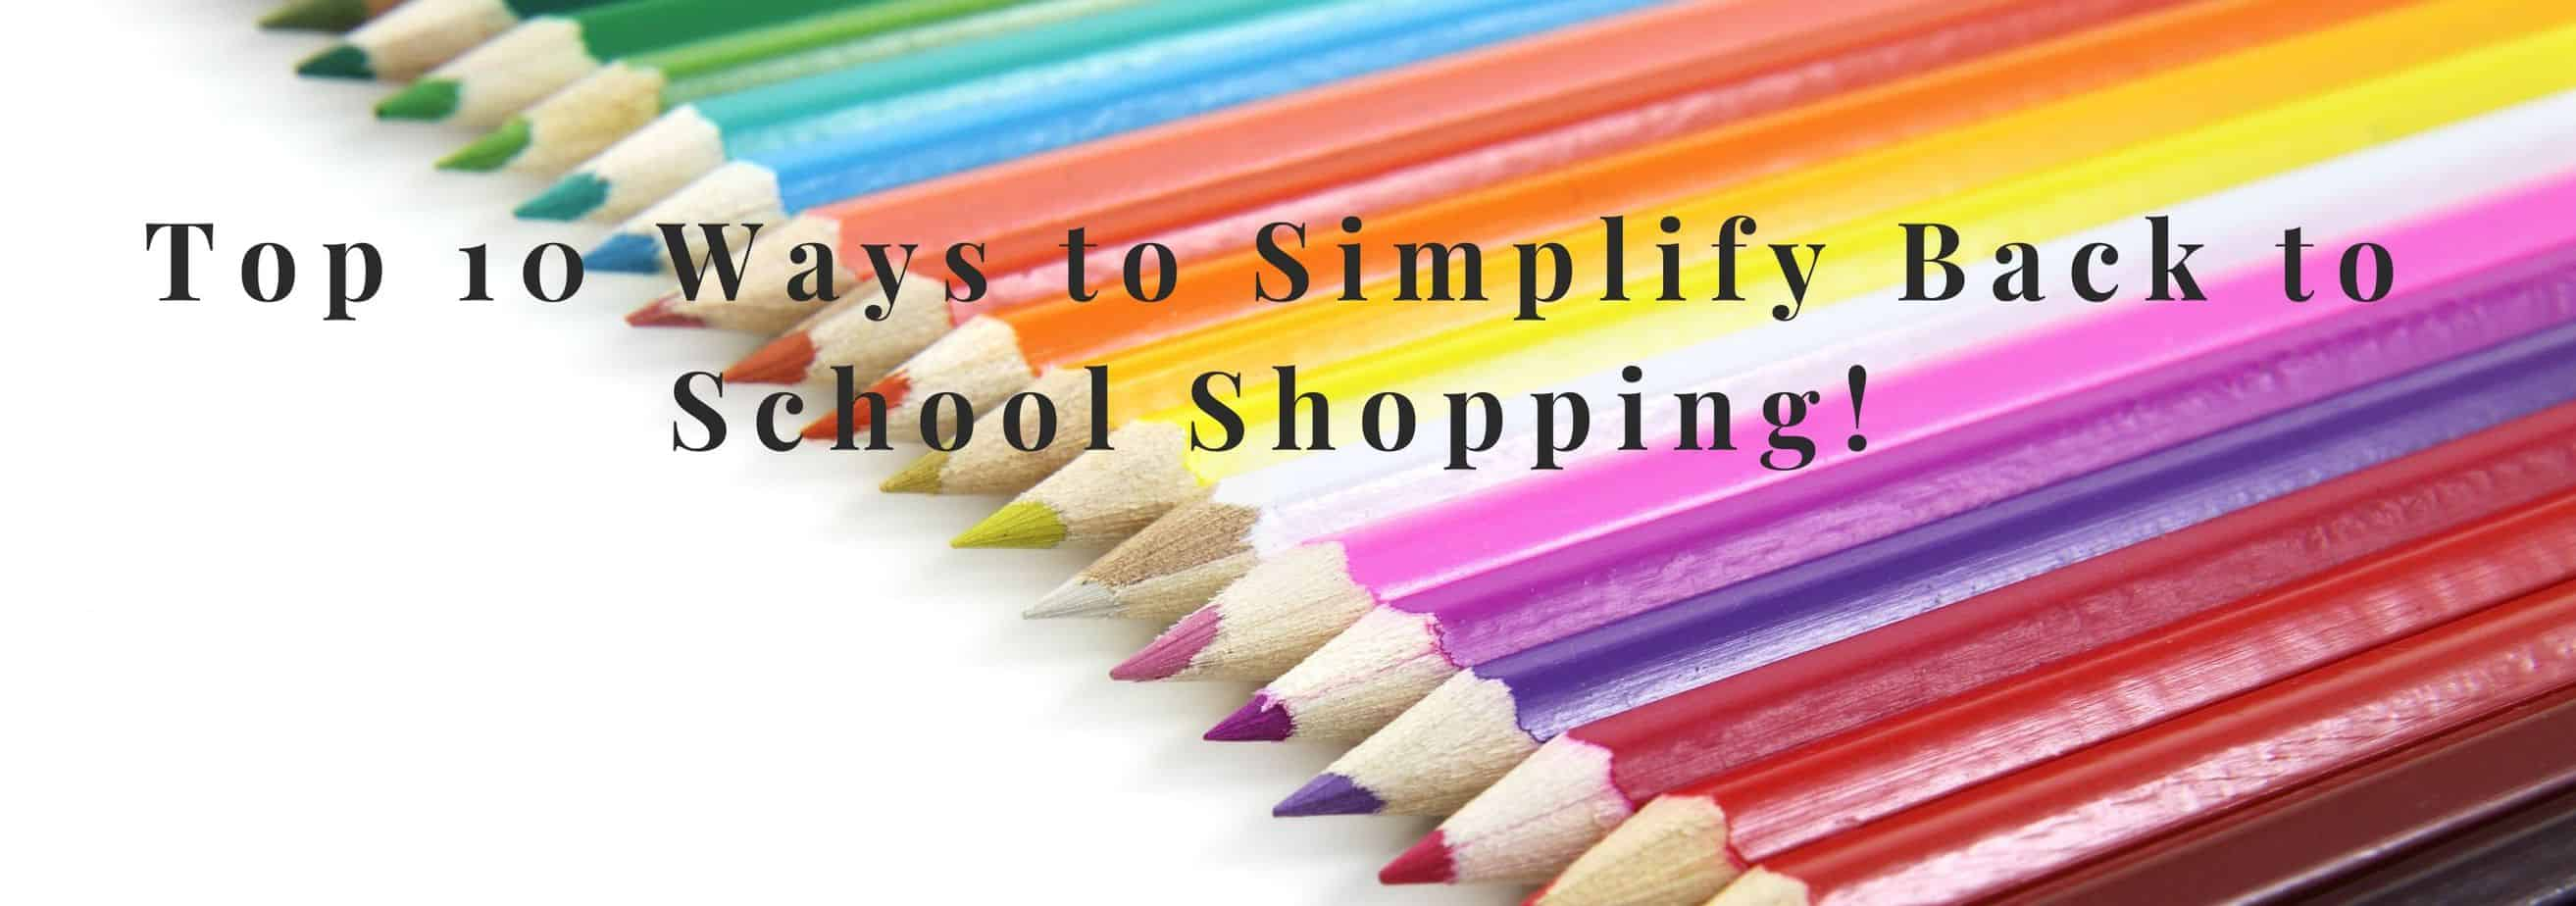 Simplify Back to School Shopping